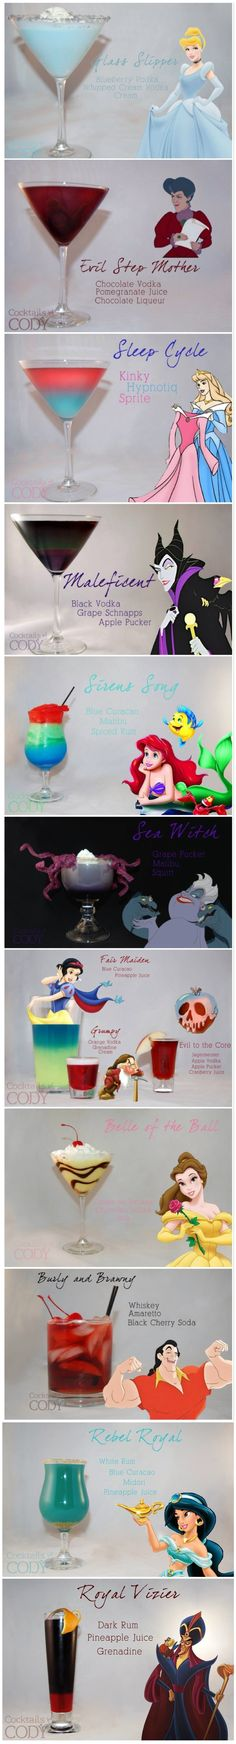 Cocktails fit for a princess. Ok, these are kind of fun...